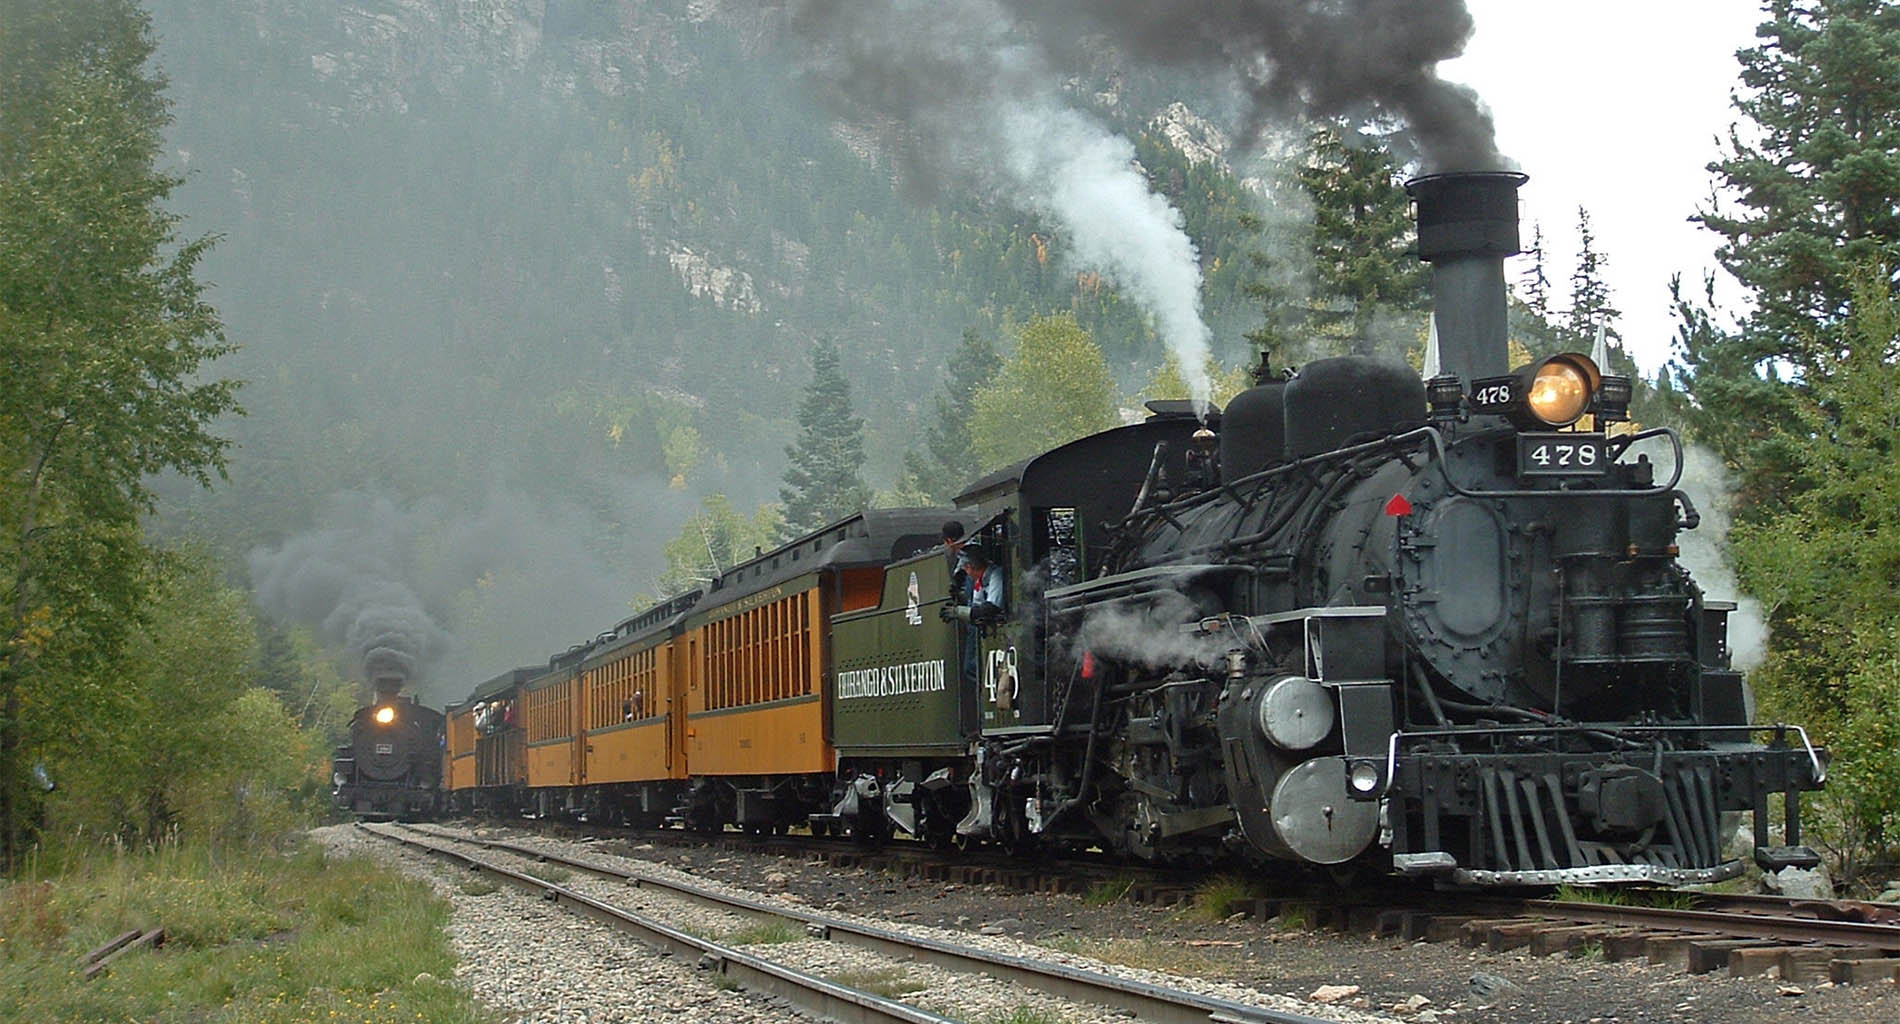 Two old locomotives with black smoke on train tracks with green forest and mountains in background